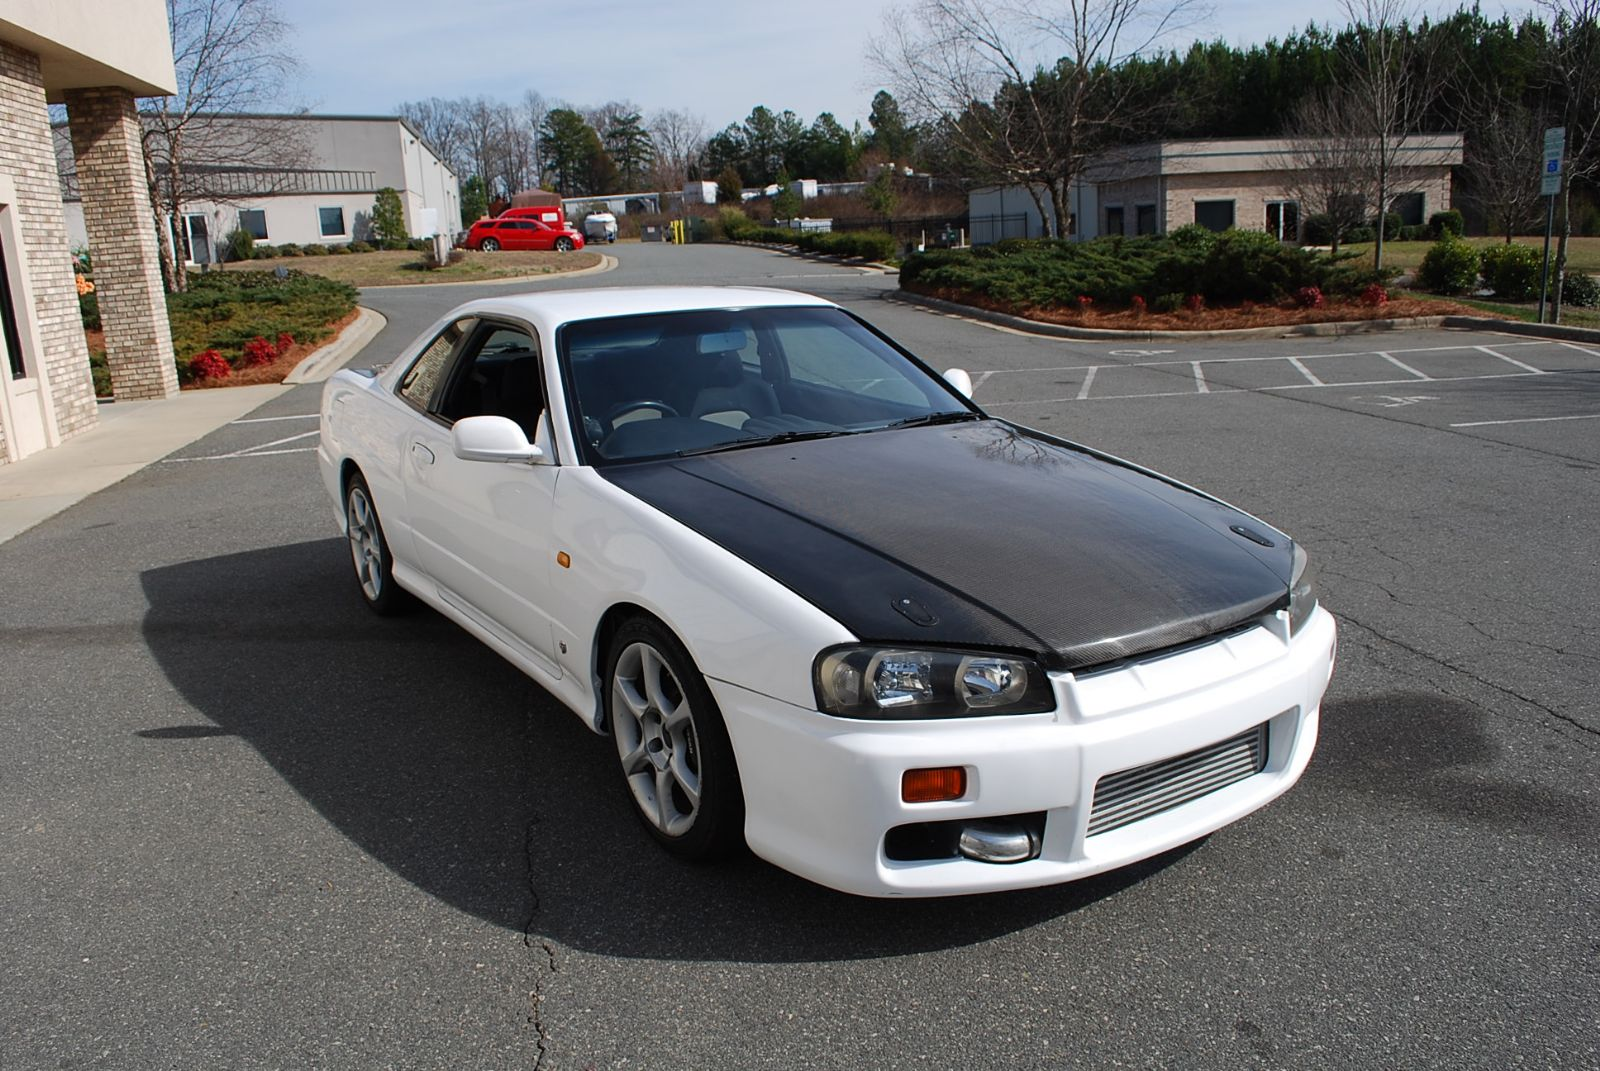 1998 Nissan Skyline Gt T R34 Skyline R34 For Sale Charlotte North Carolina